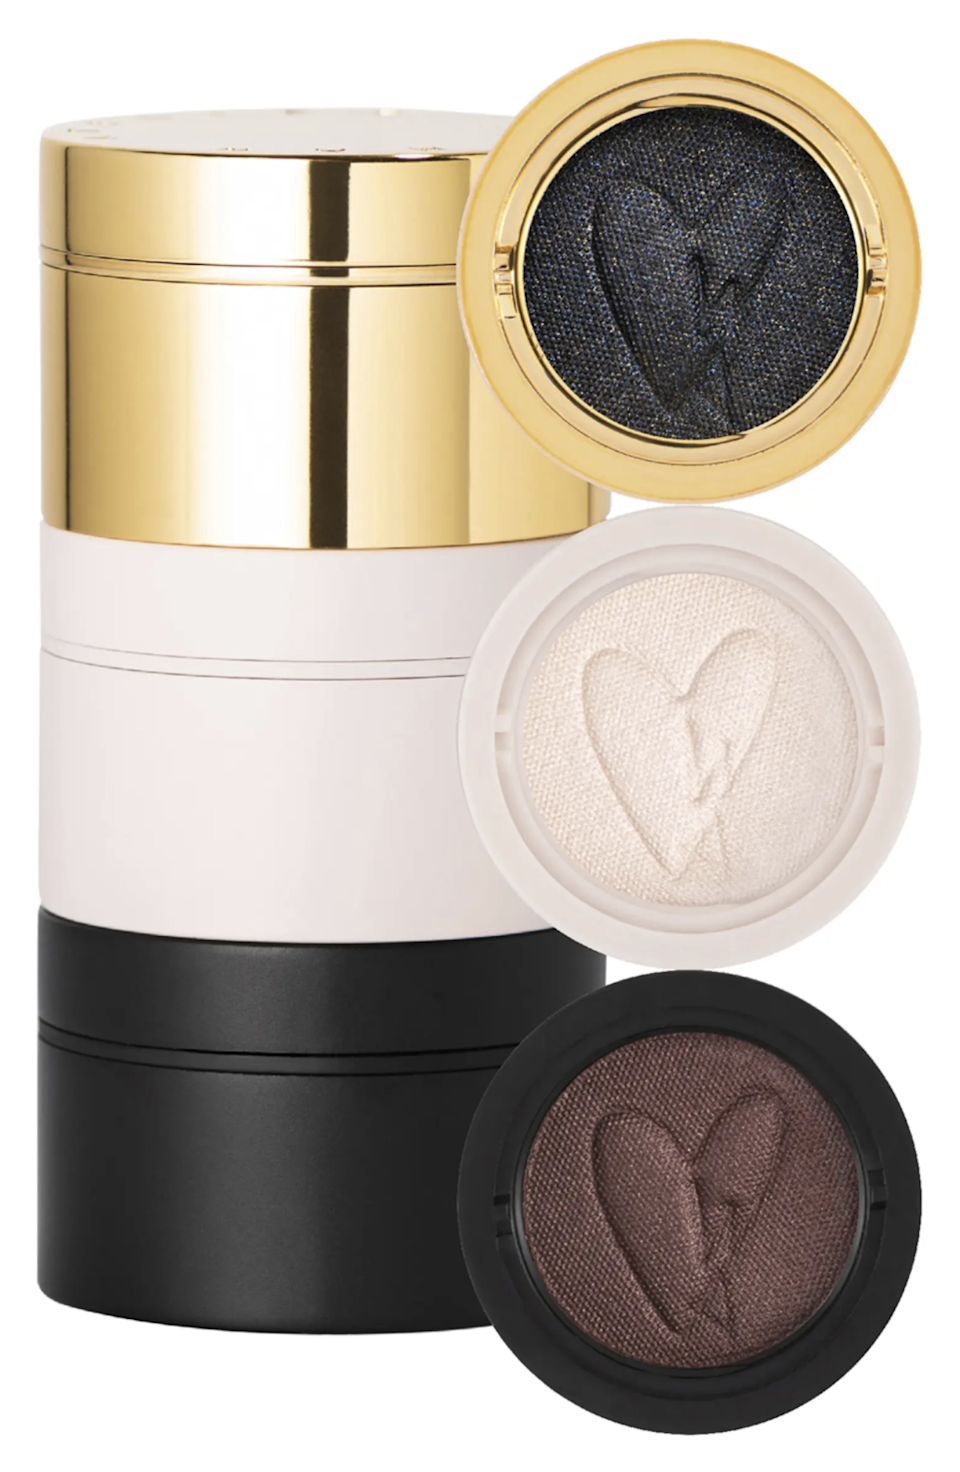 """<h2>Westman Atelier Eye Pods Eyeshadow Trio</h2><br>Short of having makeup artist Gucci Westman on speed dial, these silky, blendable shadows are an easy way to execute quick, effortless glam.<br><br><strong>Westman Atelier</strong> Eye Pods Eyeshadow Trio, $, available at <a href=""""https://go.skimresources.com/?id=30283X879131&url=https%3A%2F%2Fwww.nordstrom.com%2Fs%2Fwestman-atelier-eye-pods-eyeshadow-trio%2F6421150"""" rel=""""nofollow noopener"""" target=""""_blank"""" data-ylk=""""slk:Nordstrom"""" class=""""link rapid-noclick-resp"""">Nordstrom</a>"""